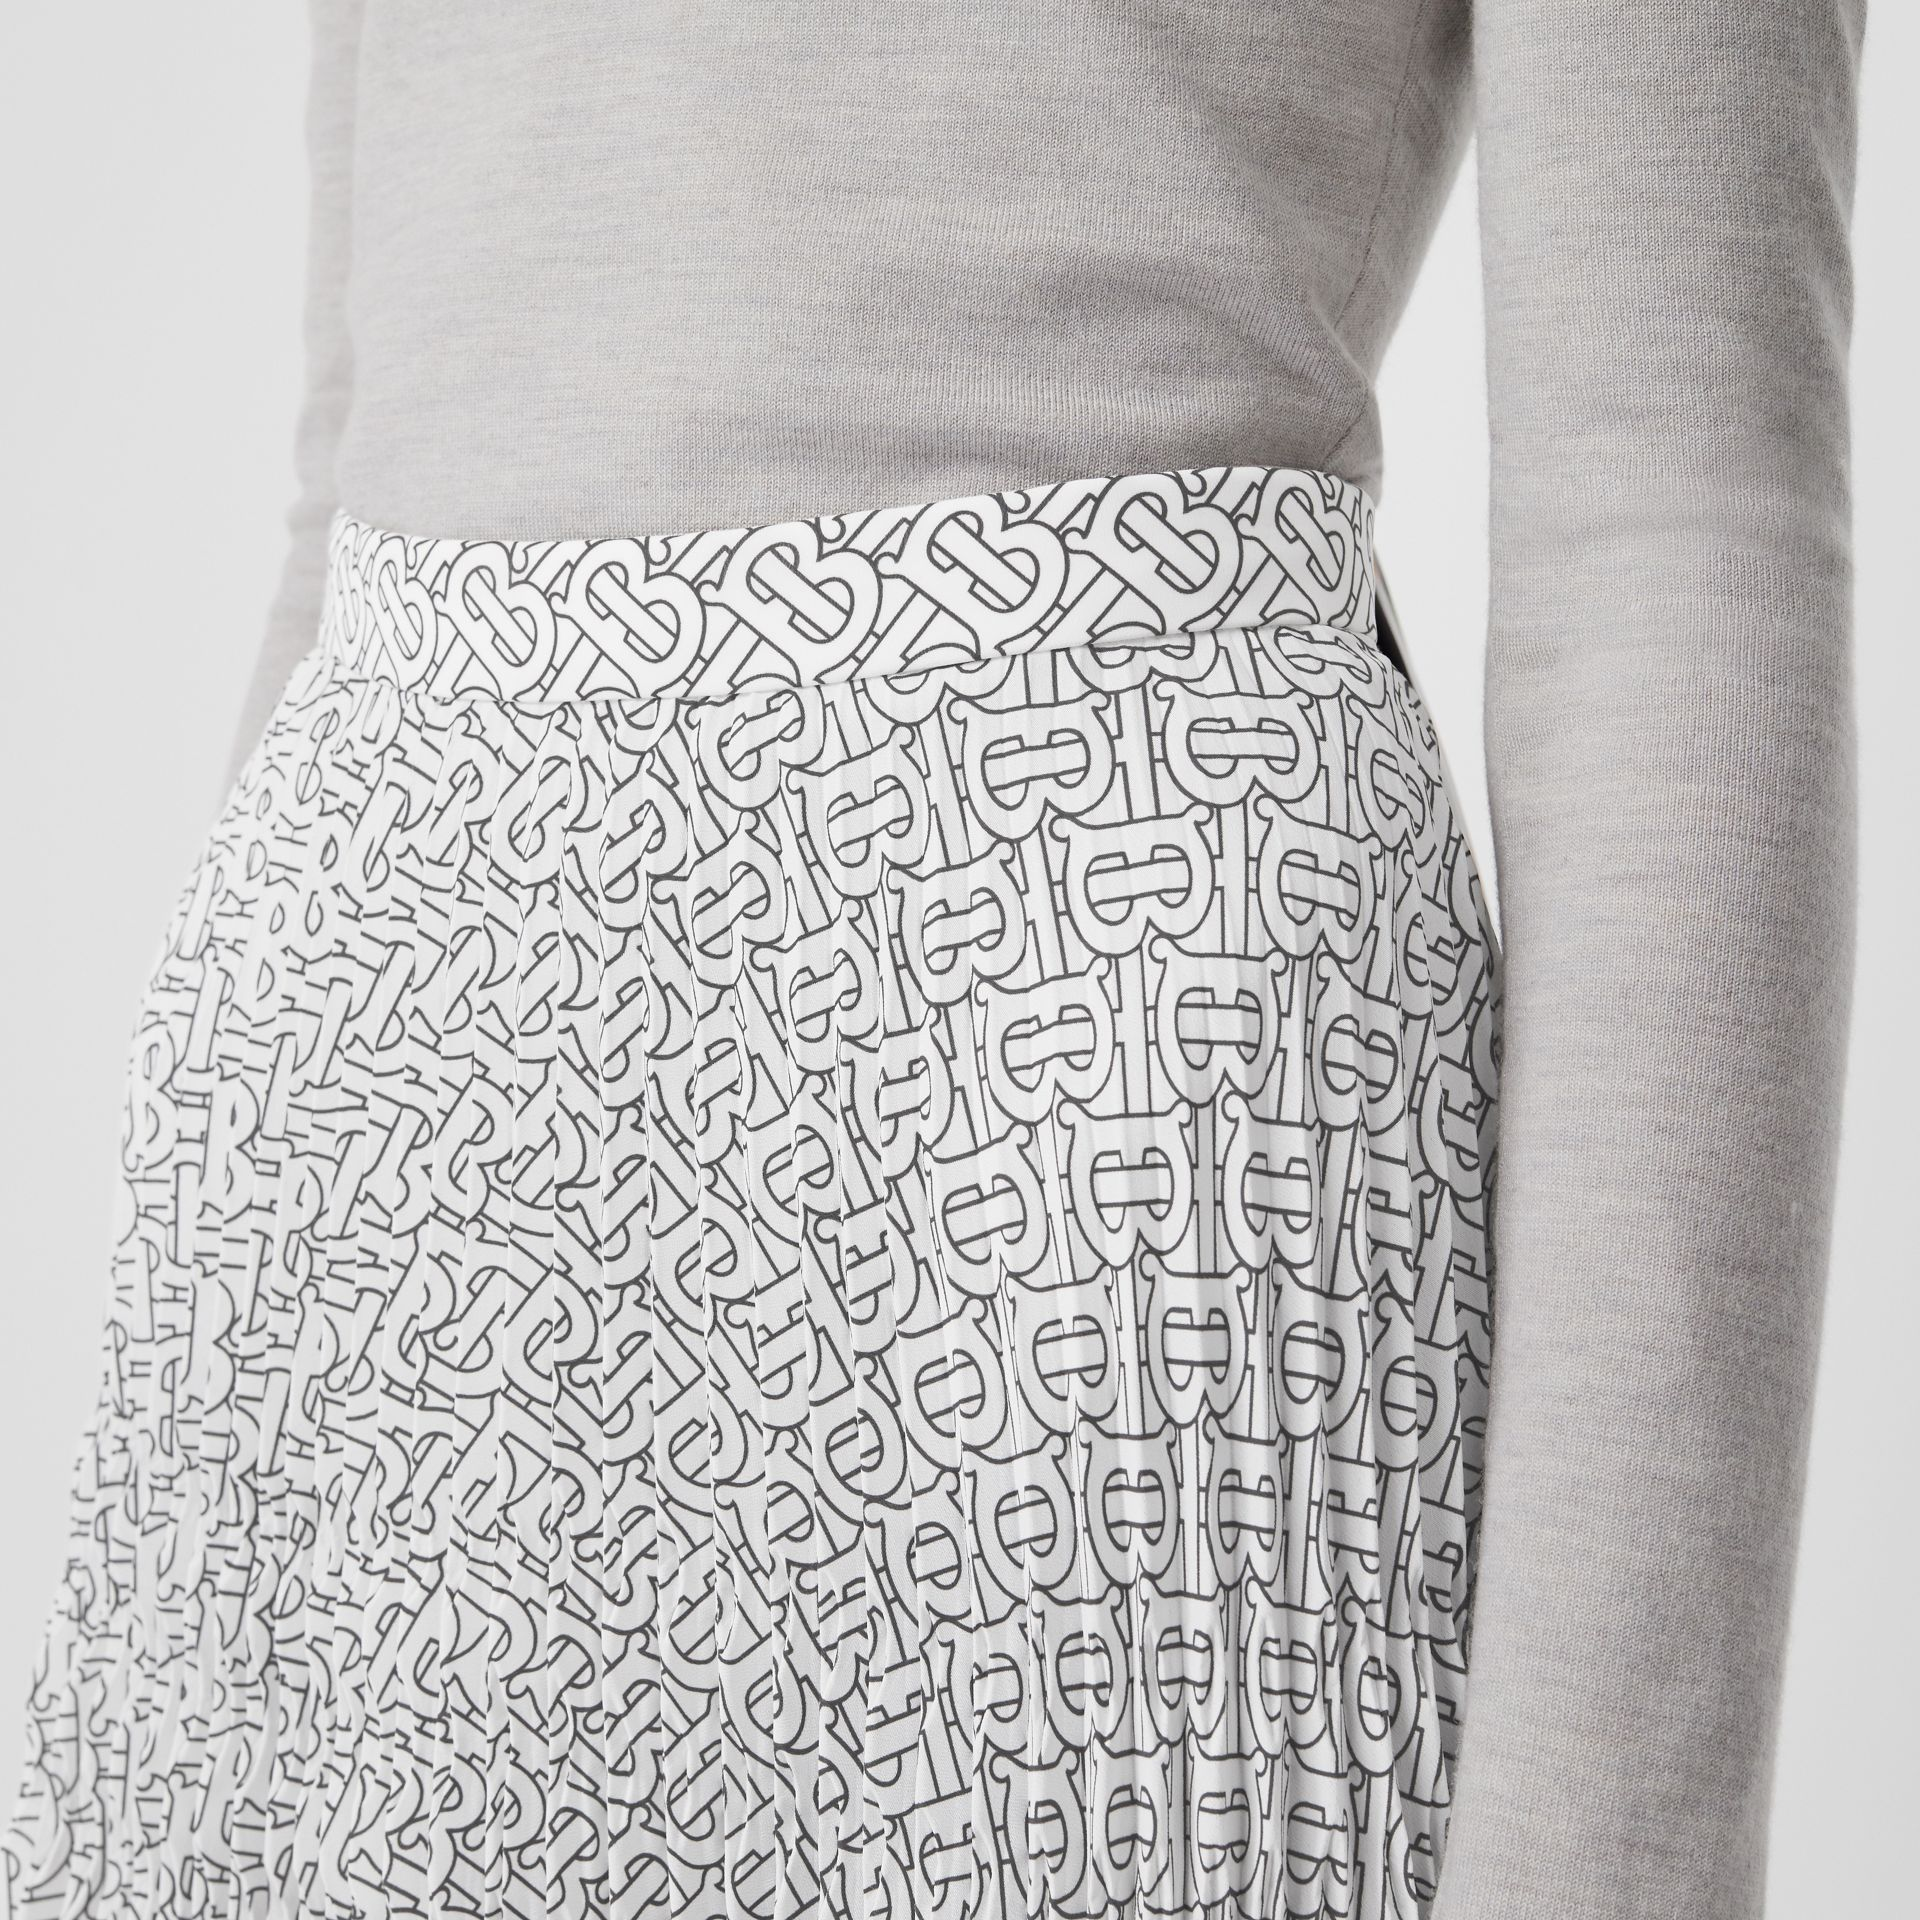 Monogram Print Crepe De Chine Pleated Skirt in White/black - Women | Burberry Australia - gallery image 1